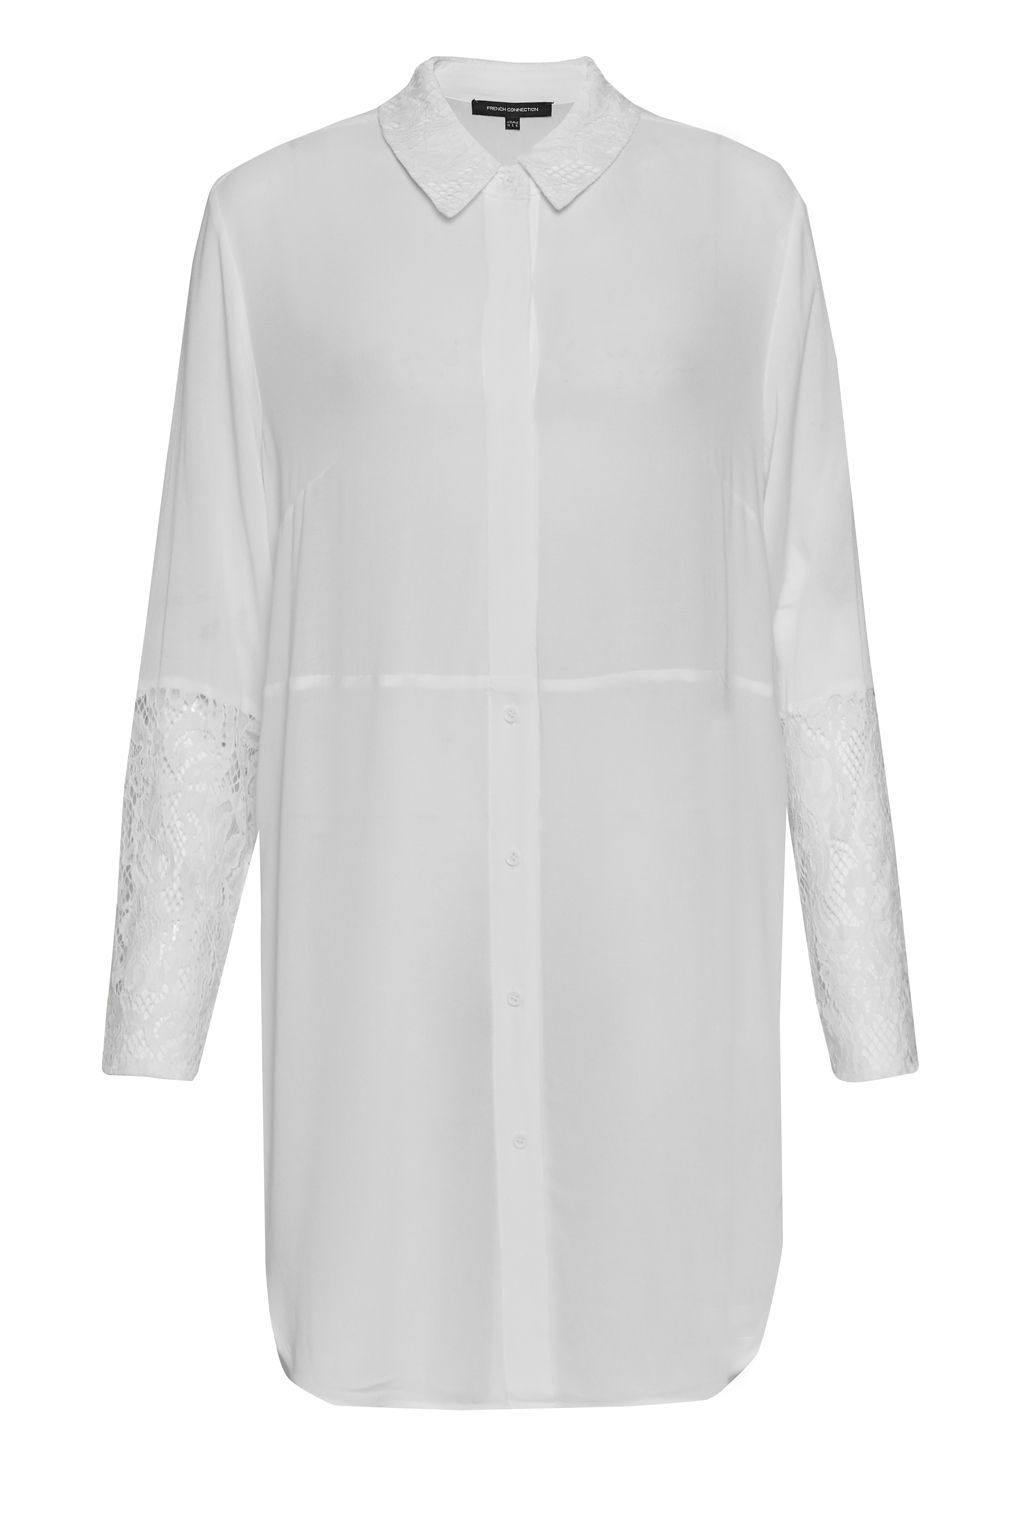 Taza Lace Longline Shirt, White - neckline: shirt collar/peter pan/zip with opening; pattern: plain; style: shirt; predominant colour: white; occasions: casual, creative work; fibres: viscose/rayon - 100%; fit: straight cut; length: mid thigh; sleeve length: long sleeve; sleeve style: standard; pattern type: fabric; texture group: other - light to midweight; wardrobe: basic; season: a/w 2016